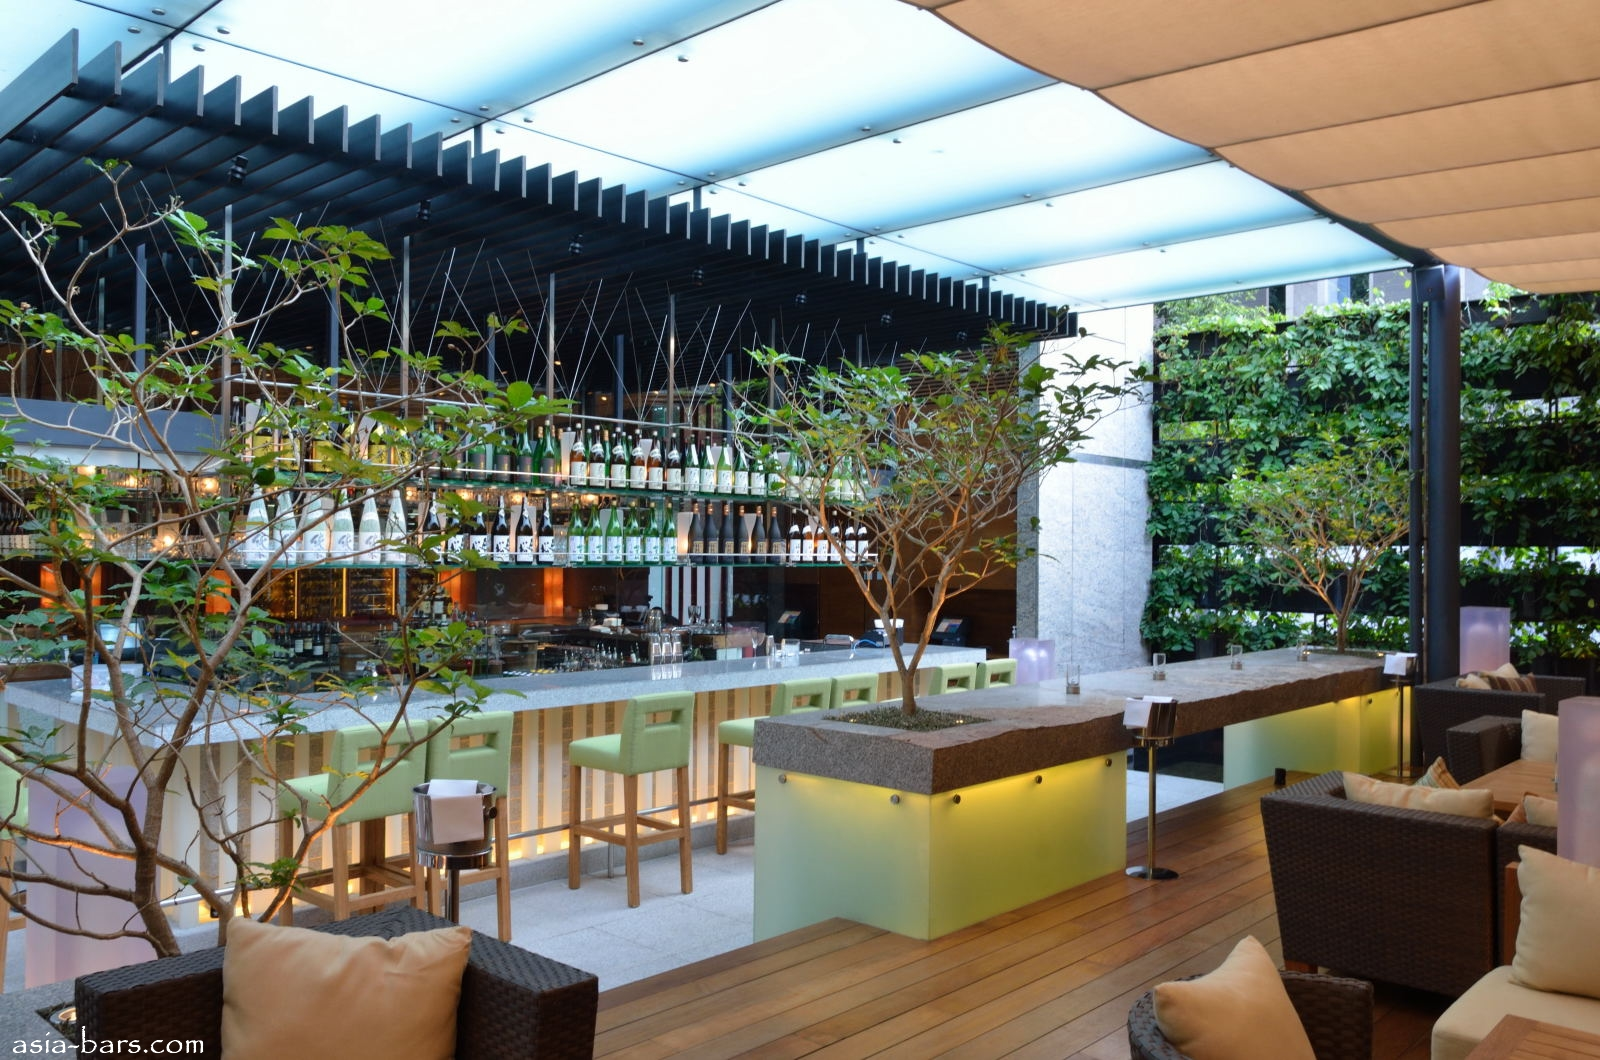 Zuma bangkok globally acclaimed restaurant group opens for Terrace bar menu